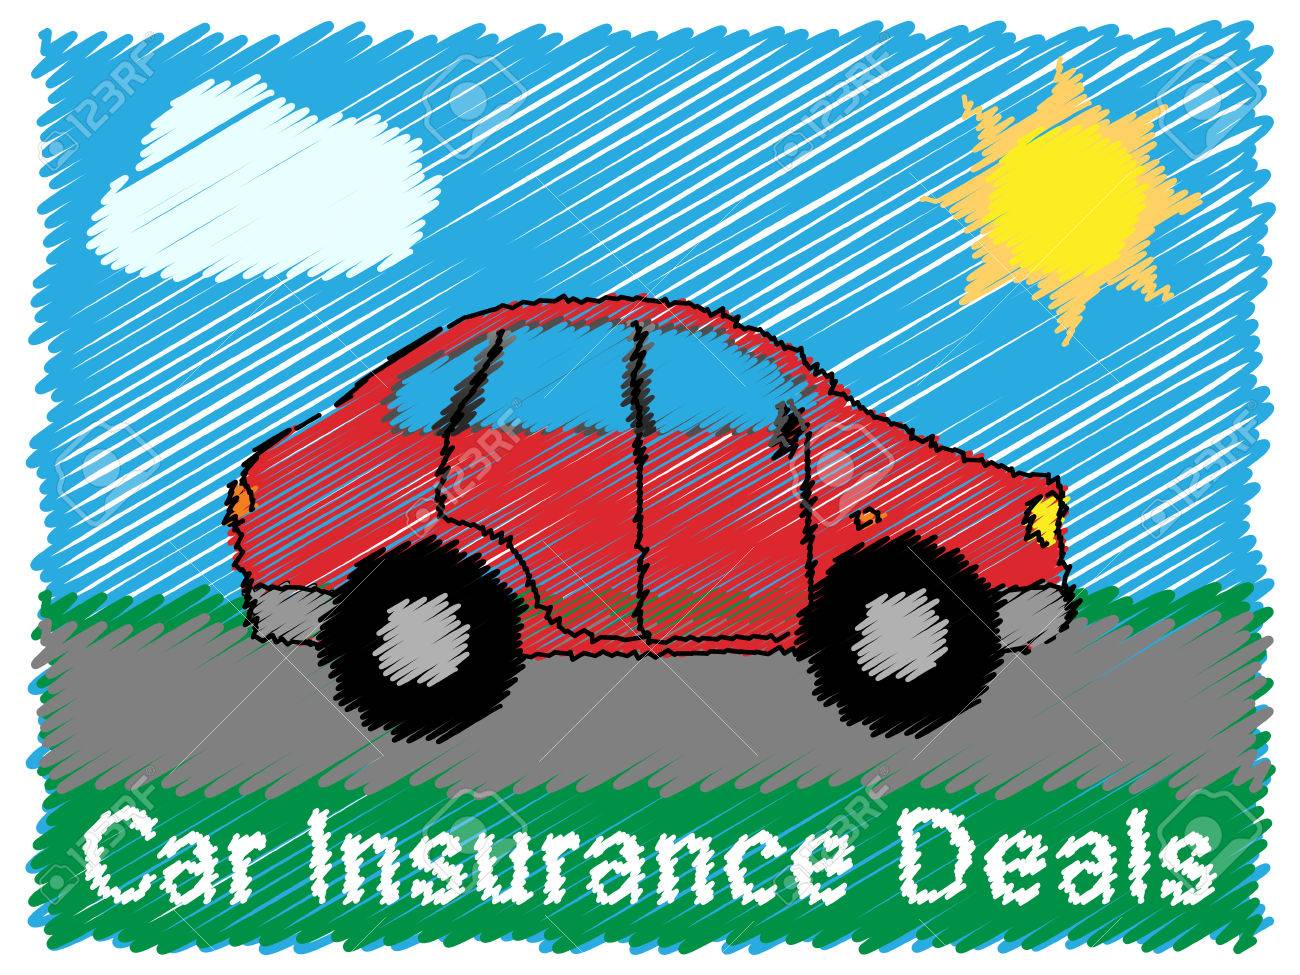 Car Insurance Deals Road Sketch Means Car Policy 3d Illustration ...